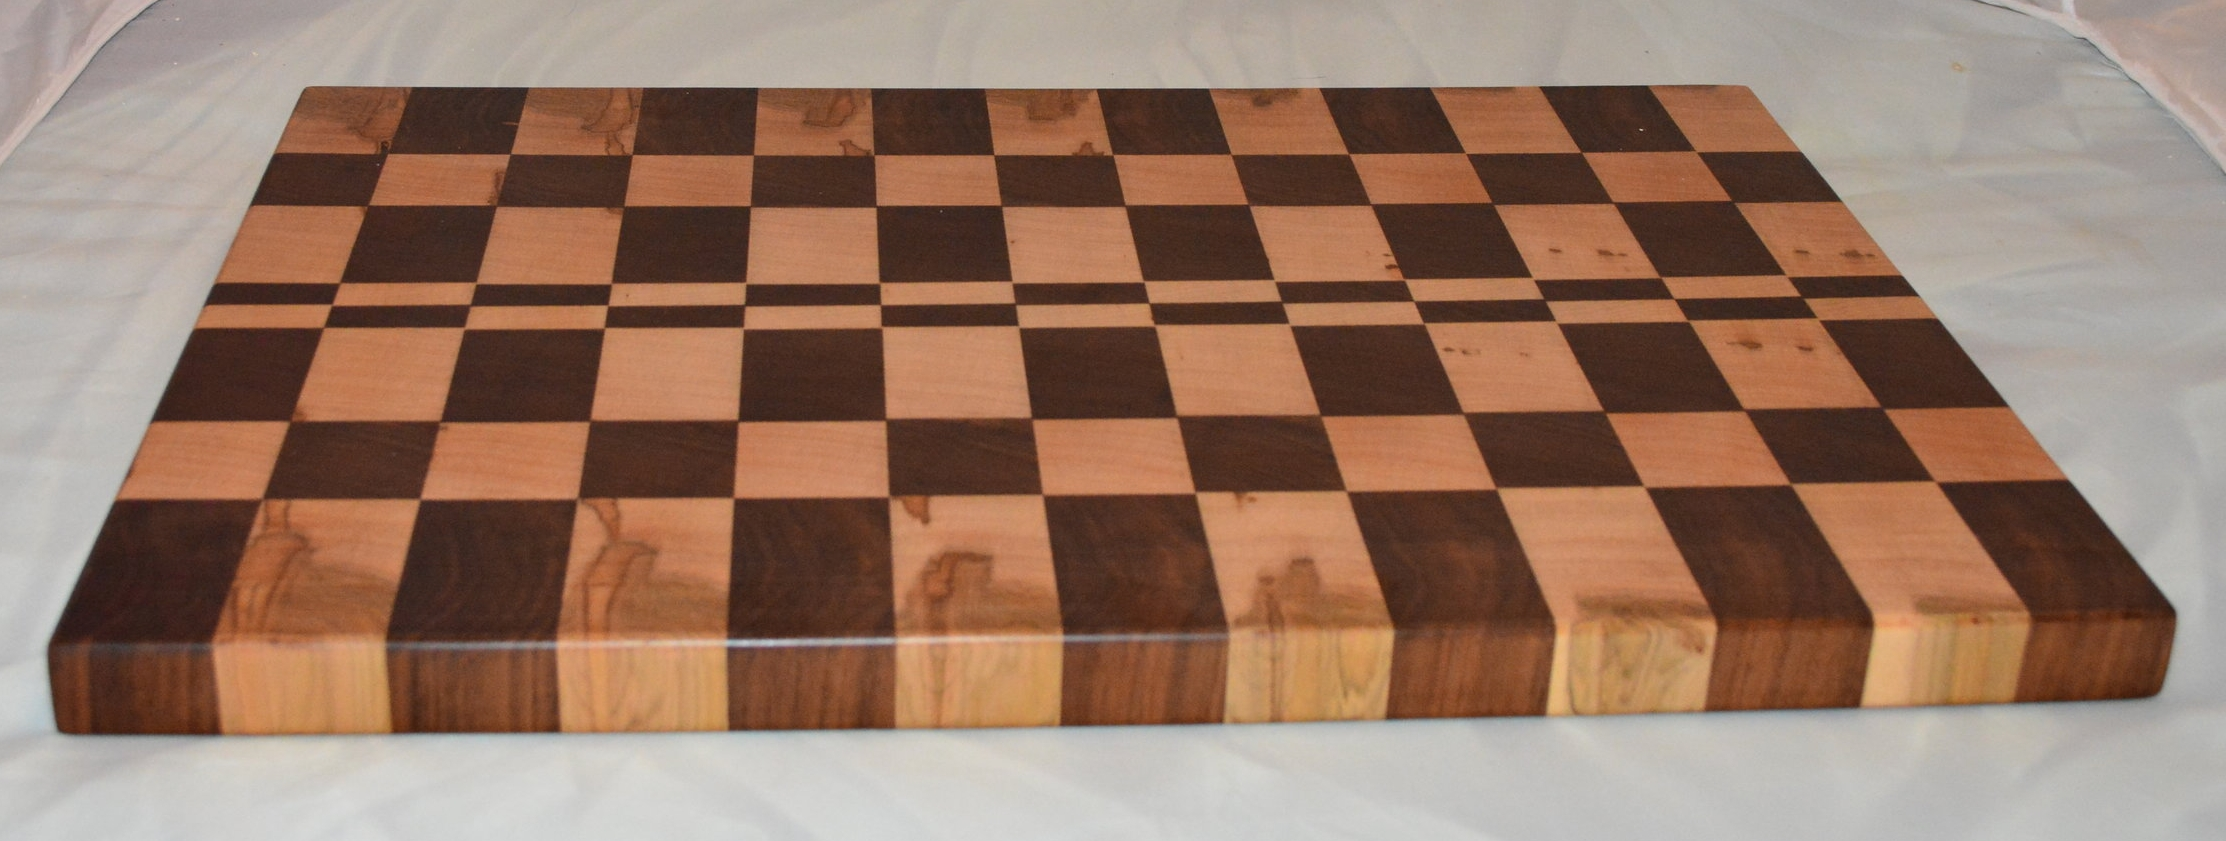 Maple and Walnut Checkerboard 2.JPG